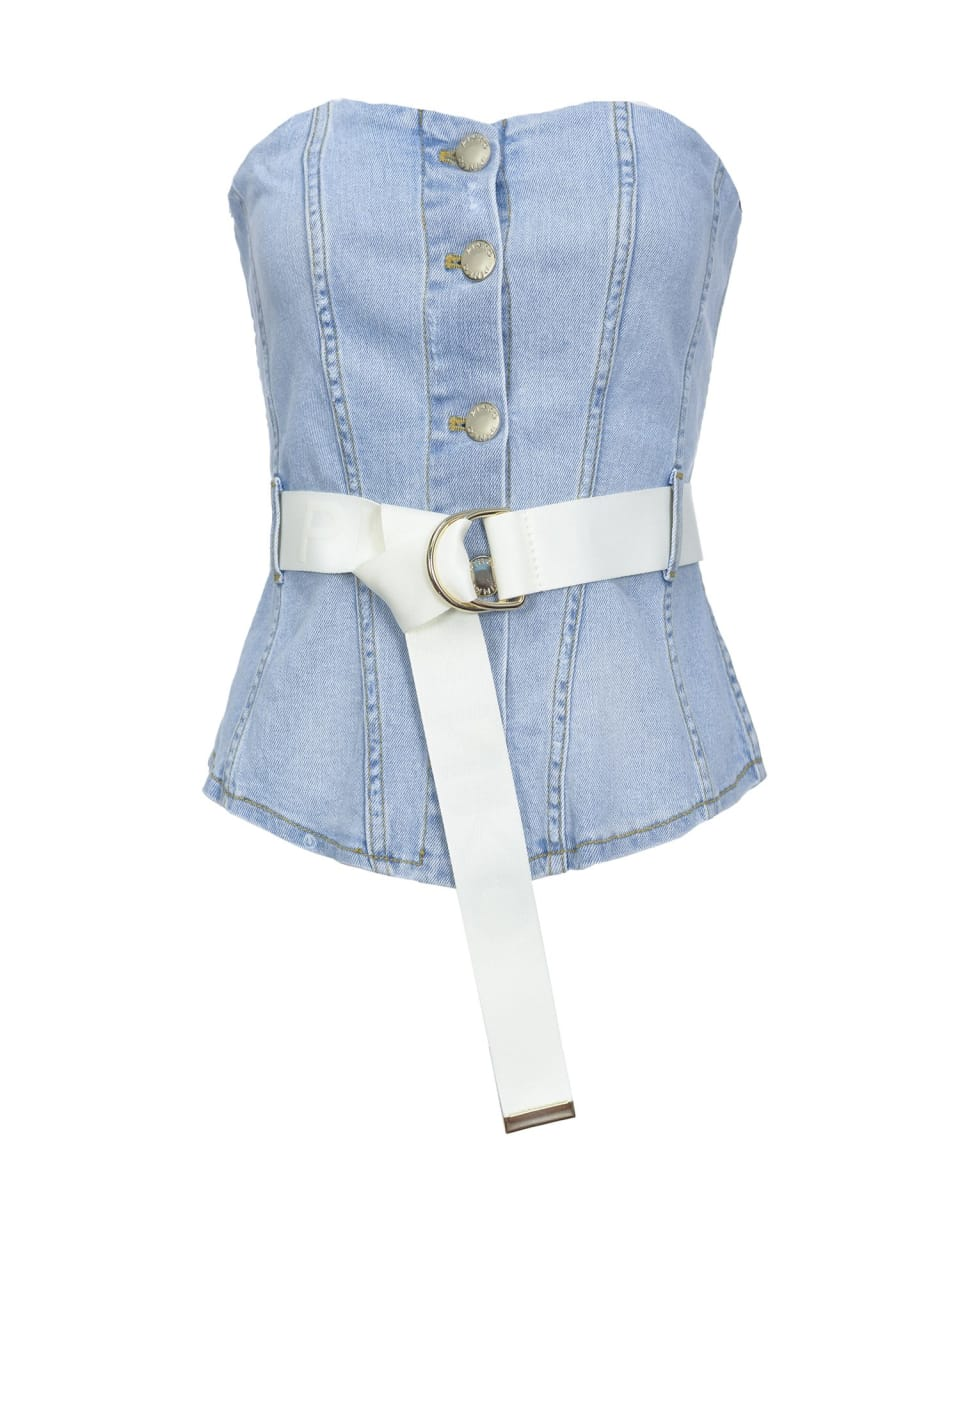 Top bustier in comfort denim